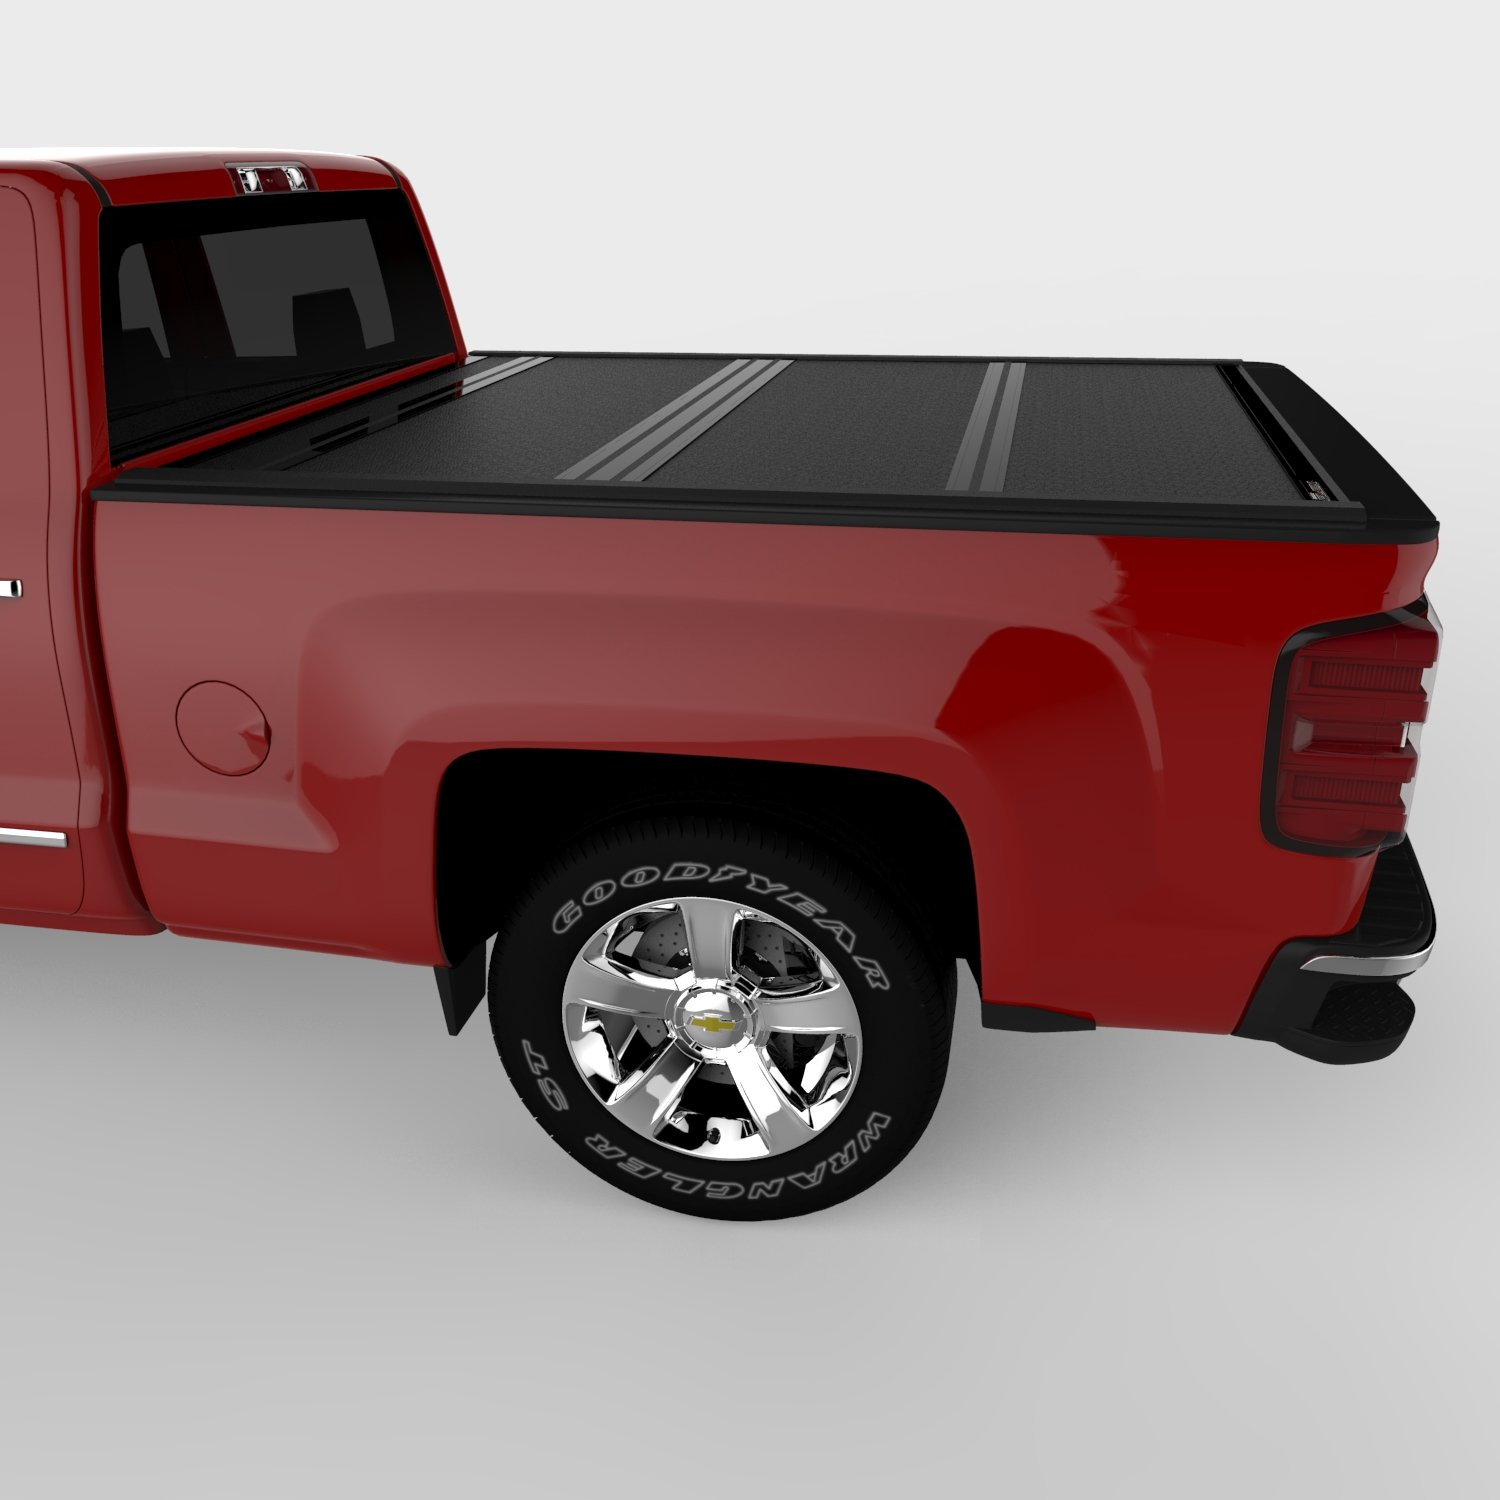 happy i flares am but undercover advice the pretty bed ridgelander fender and just cover an oem with threads some overall installed image have tonneau